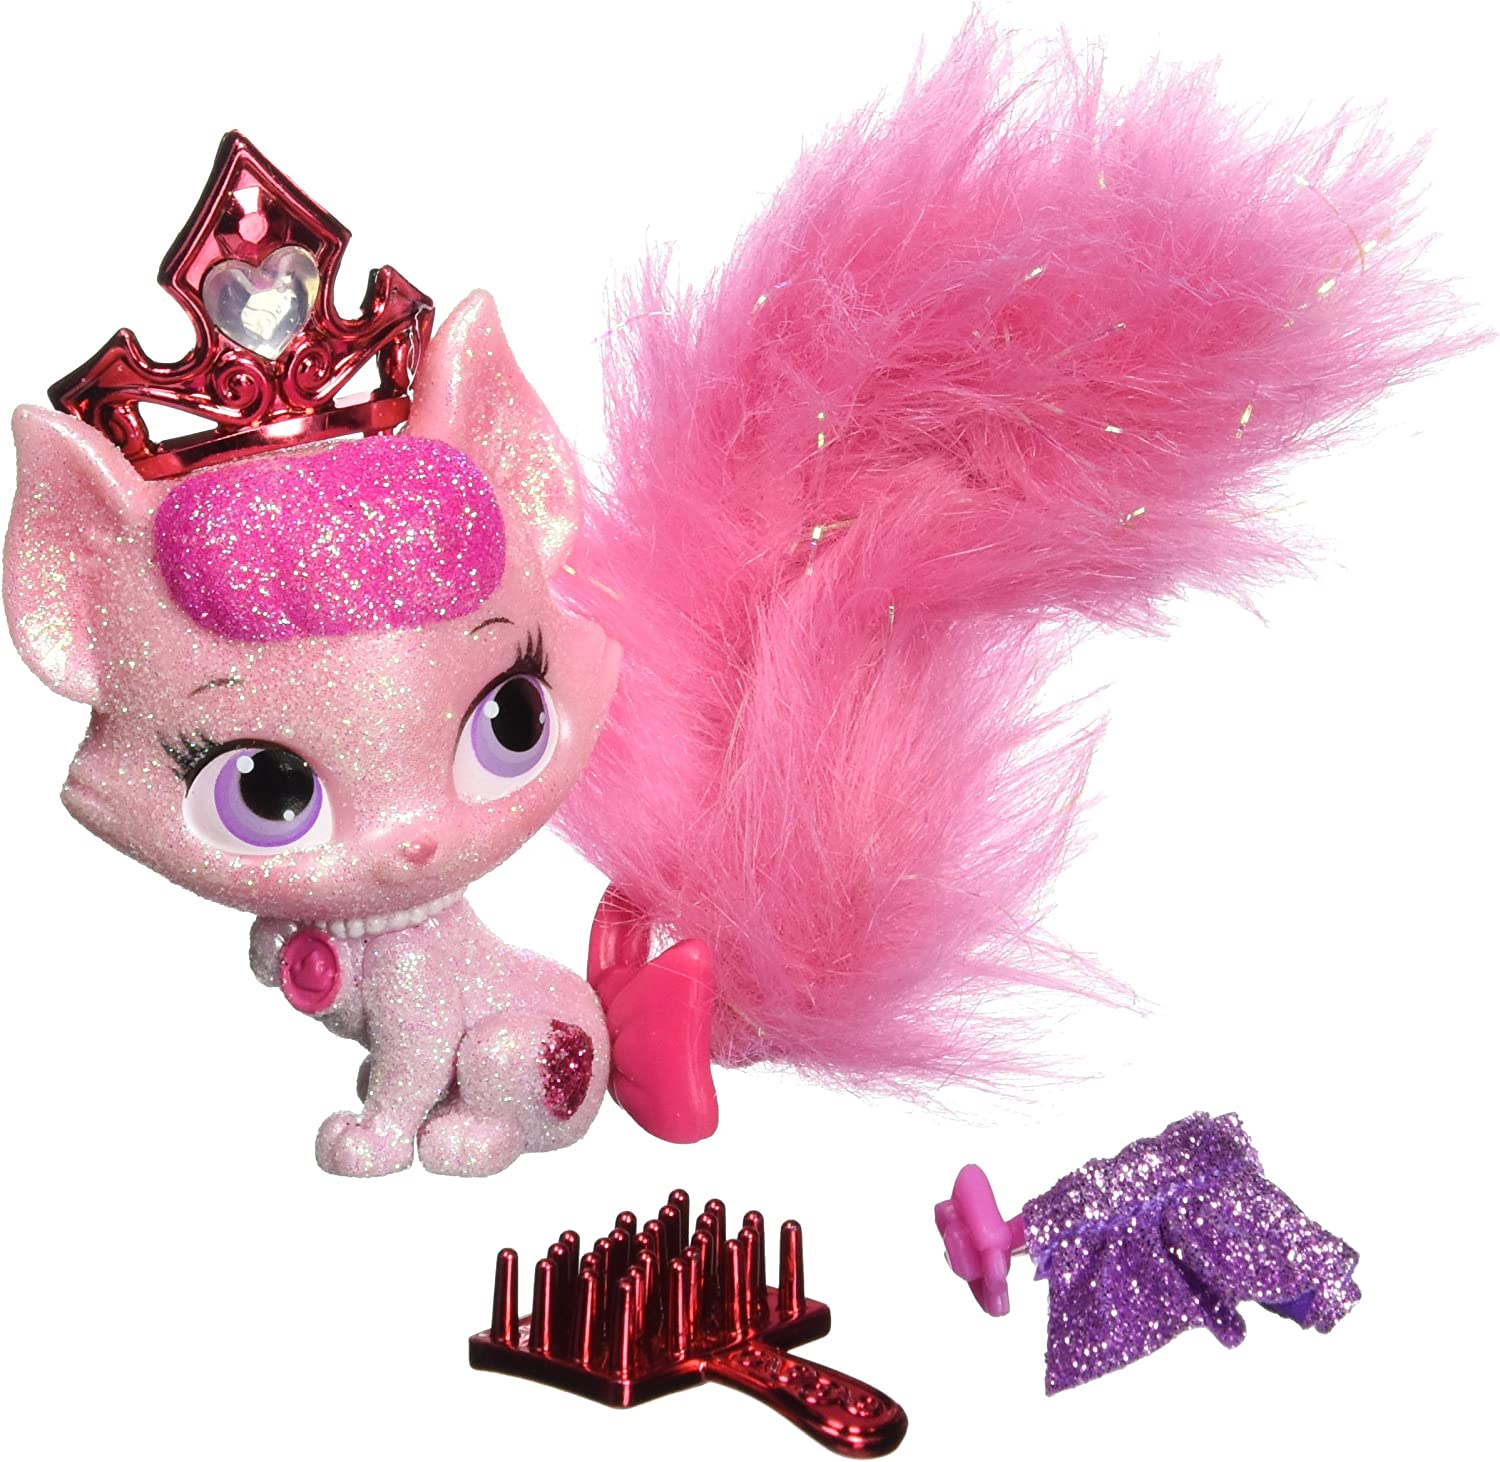 Glitzy Glitter Friends Disney Princess Palace Pets Lily Tiana/'s Kitty